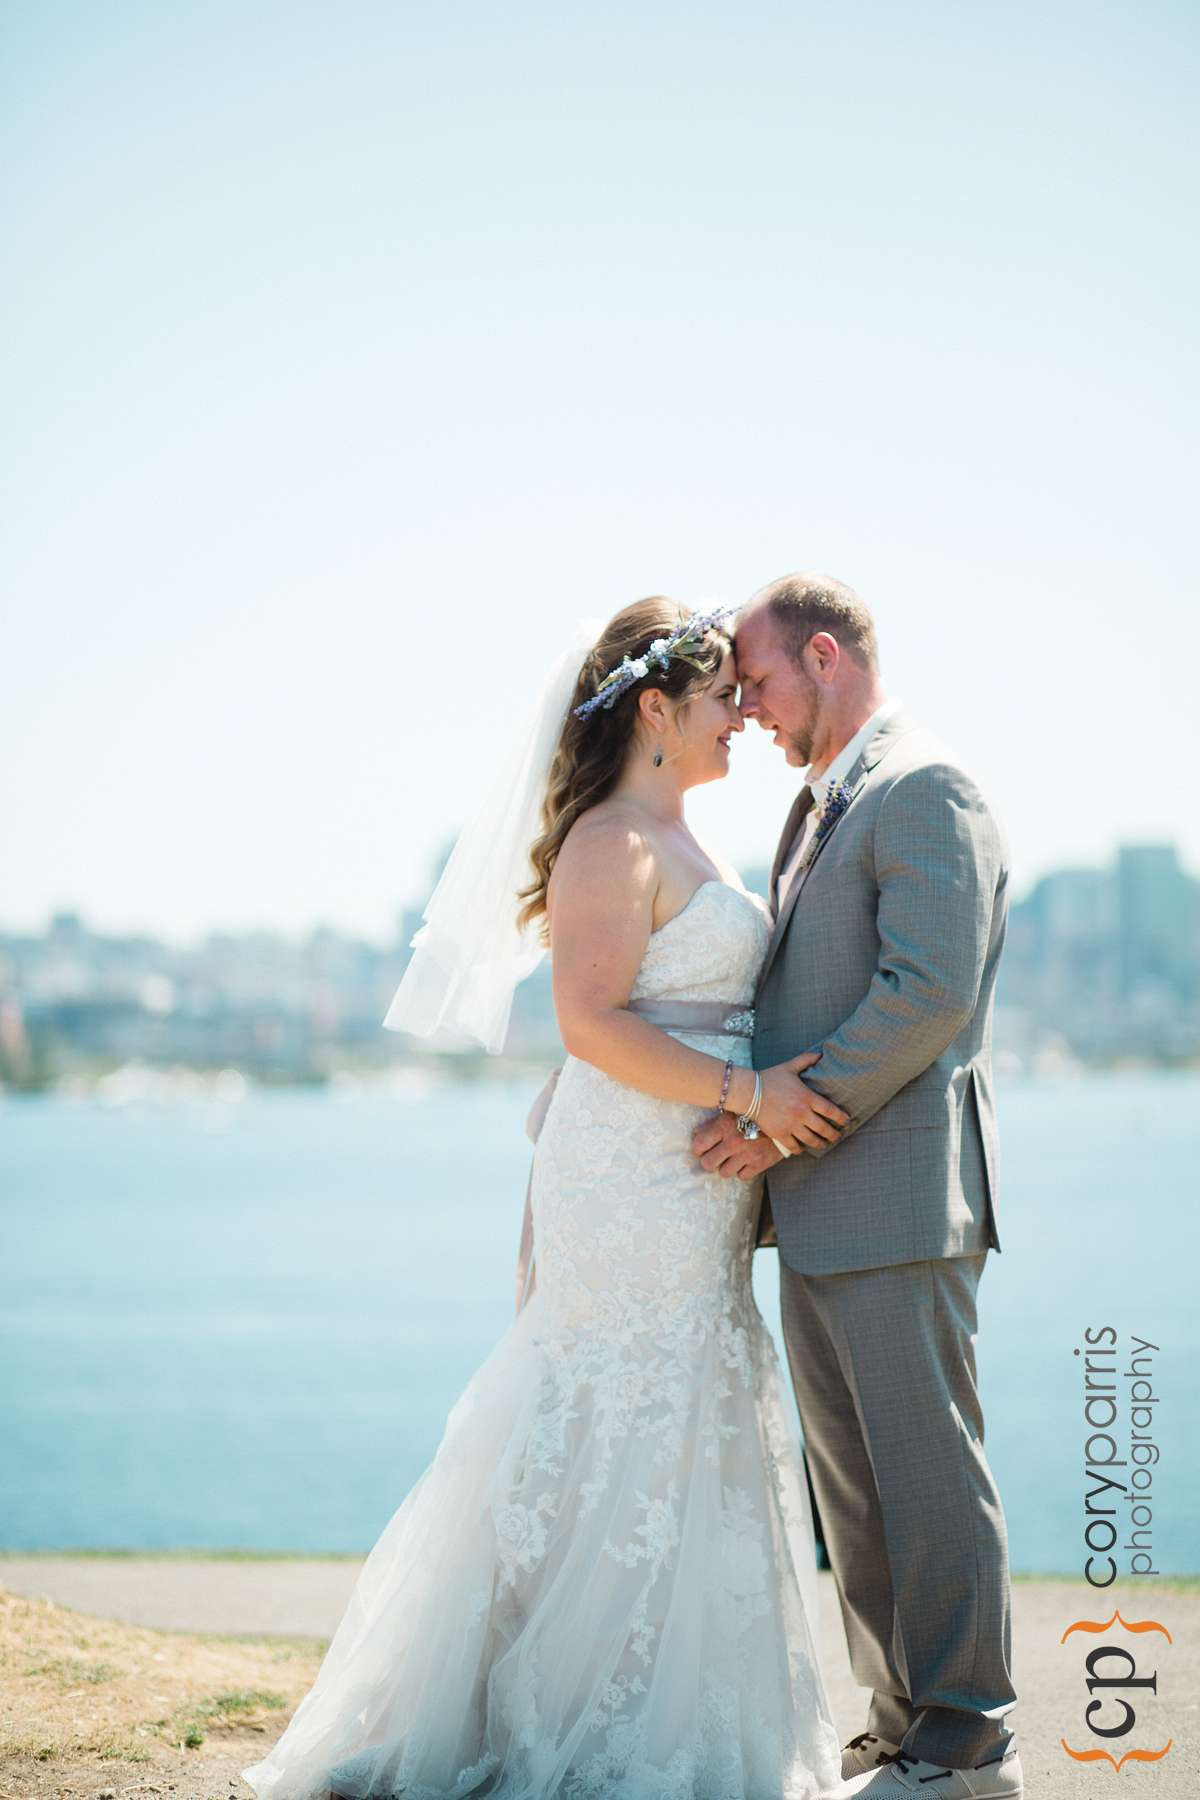 Wedding photography at Gas Works Park